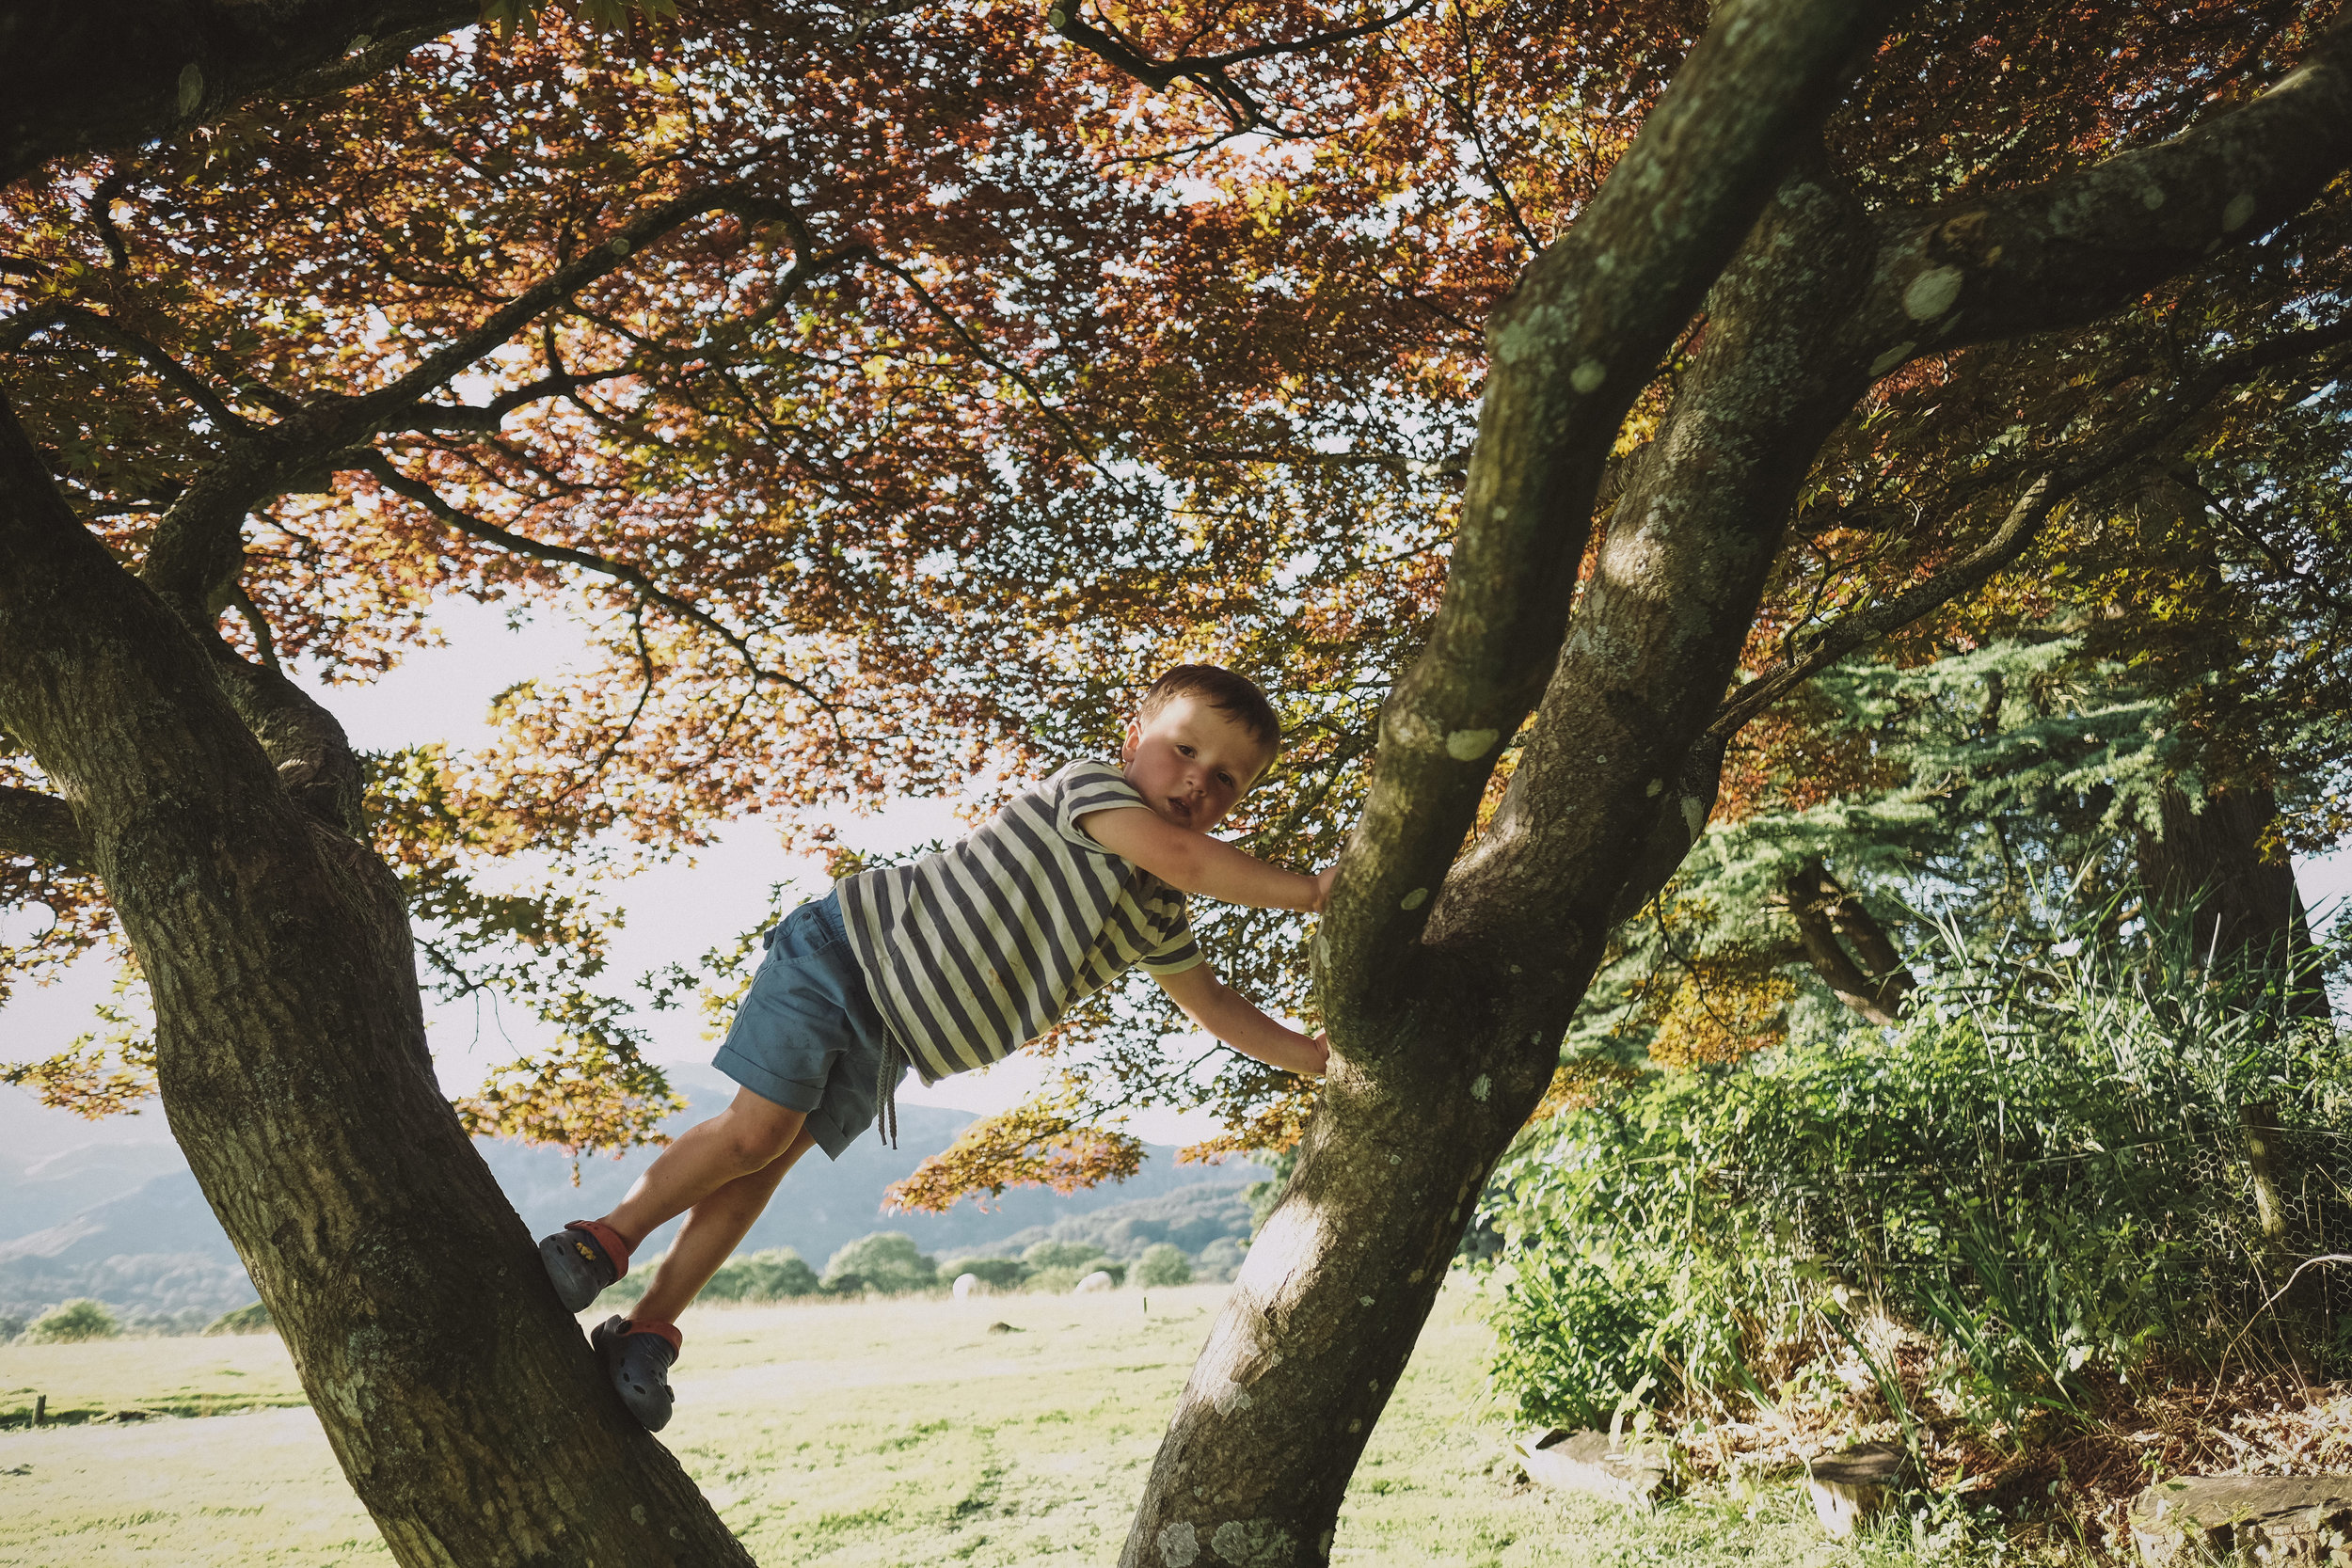 A boy climbs a tree drenched in sunlight at Julia and Darren's Lake District wedding by Barry Forshaw